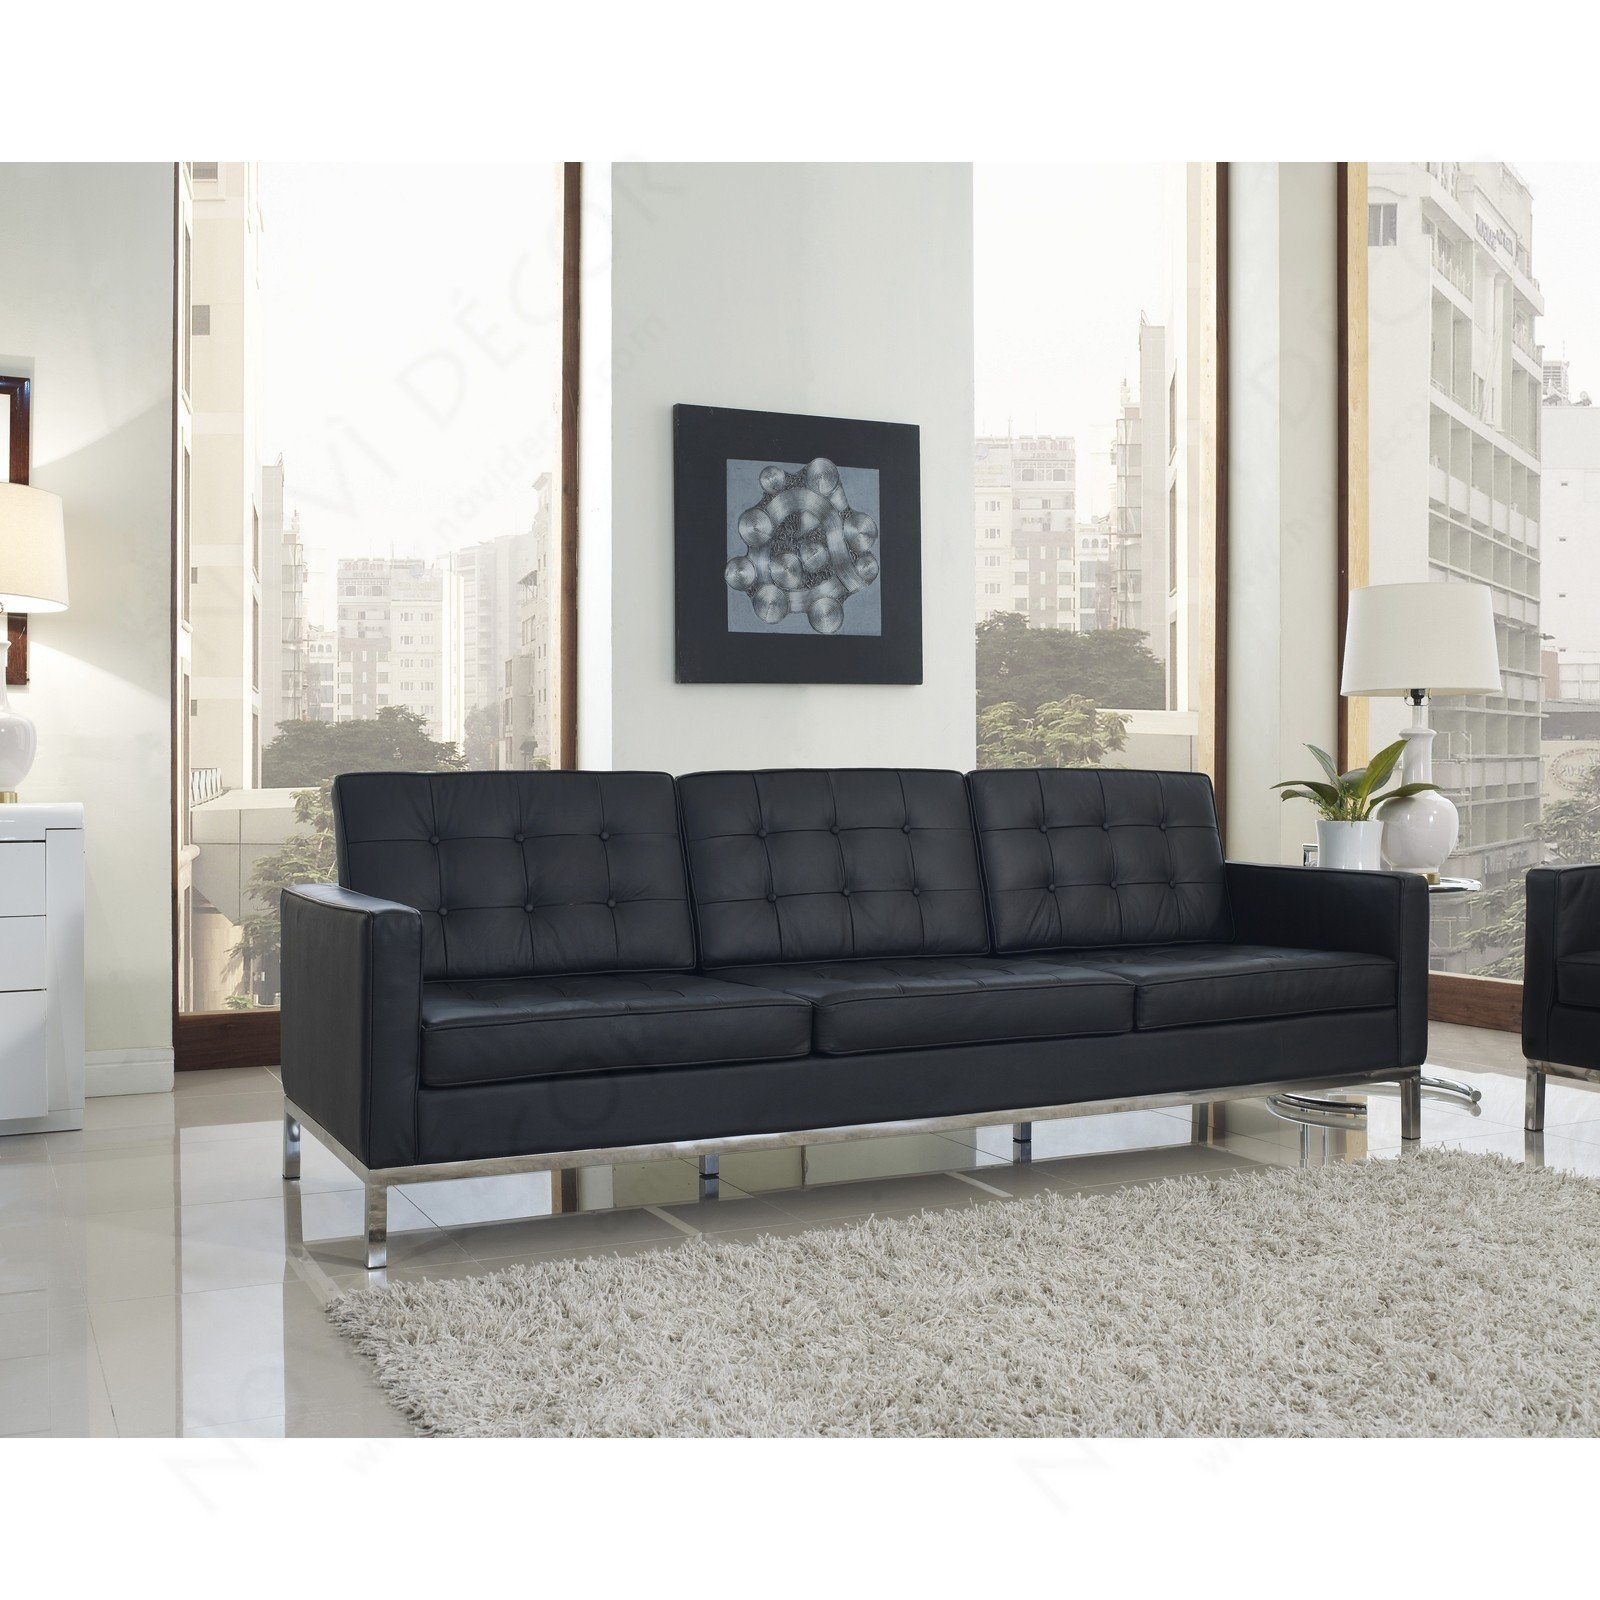 Florence Style Sofa Multiple Colors Designer Reproduction In Florence Leather Sofas (Image 8 of 15)